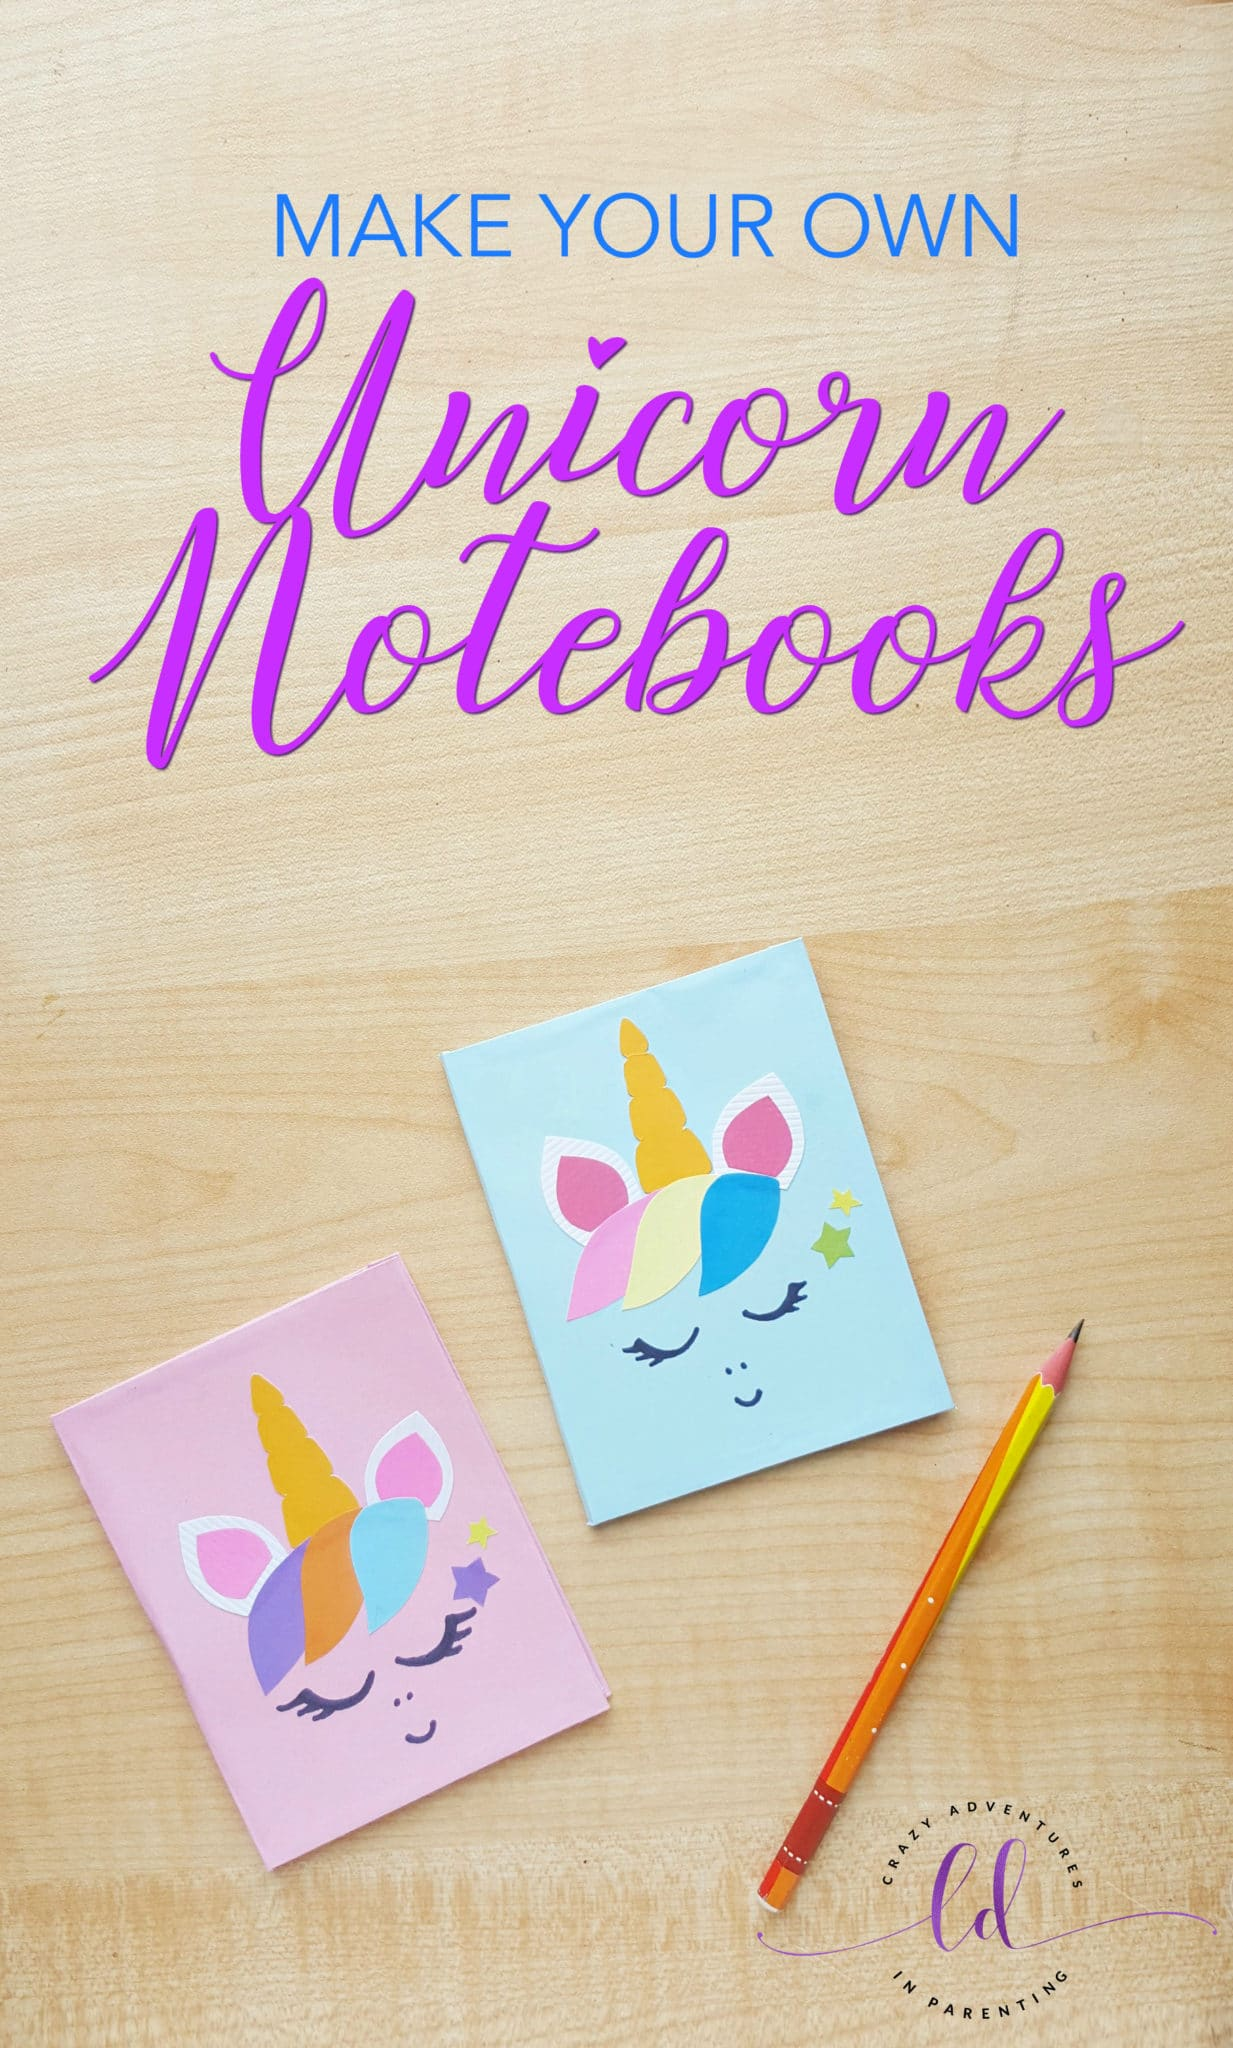 Make Your Own Unicorn Notebook